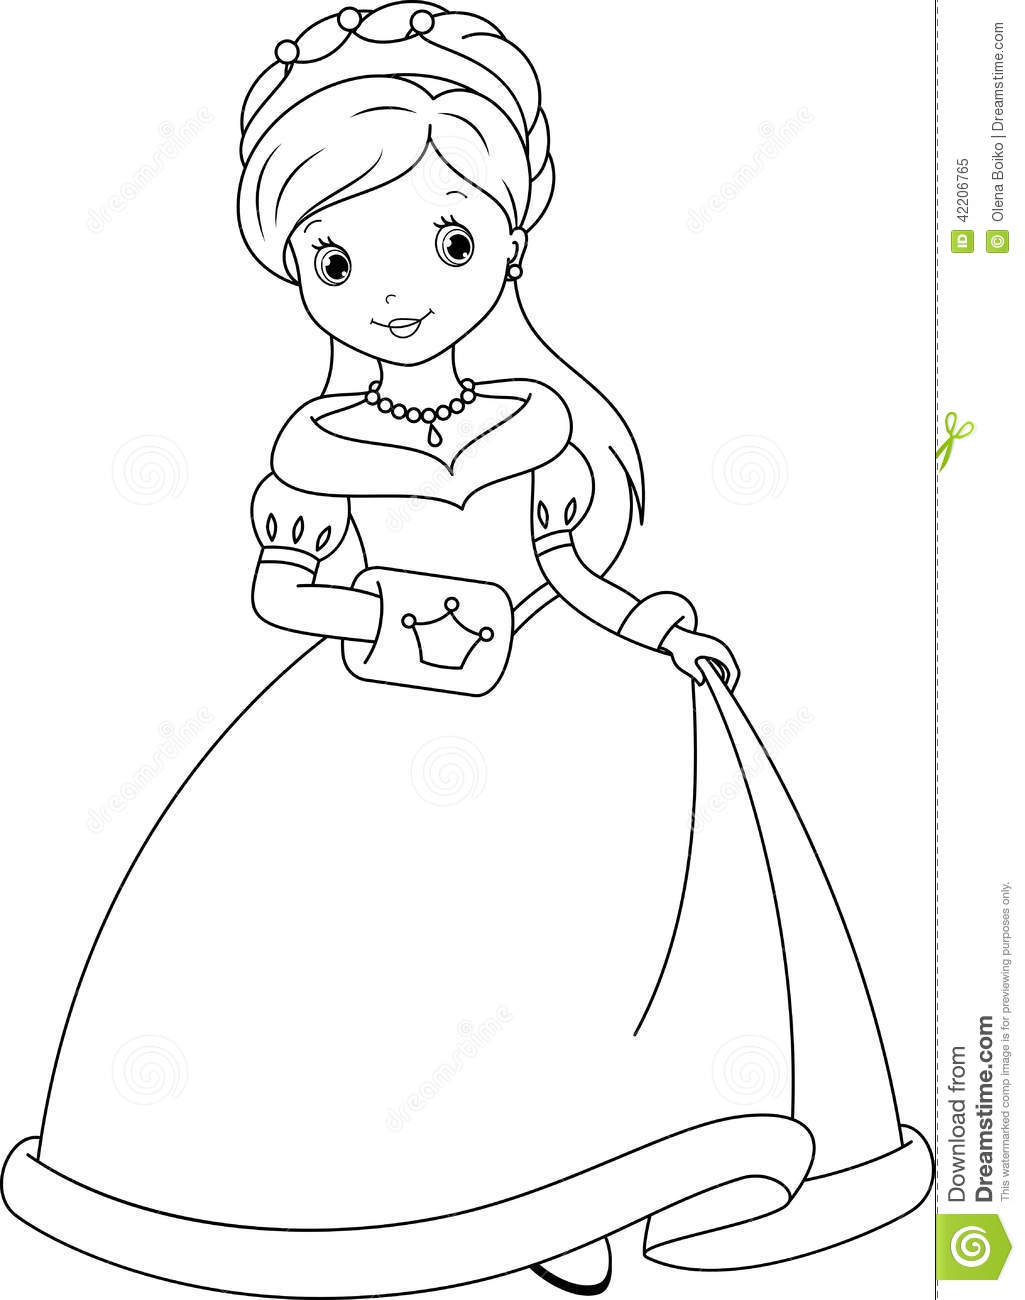 Princess Coloring Page Stock Vector Illustration Of